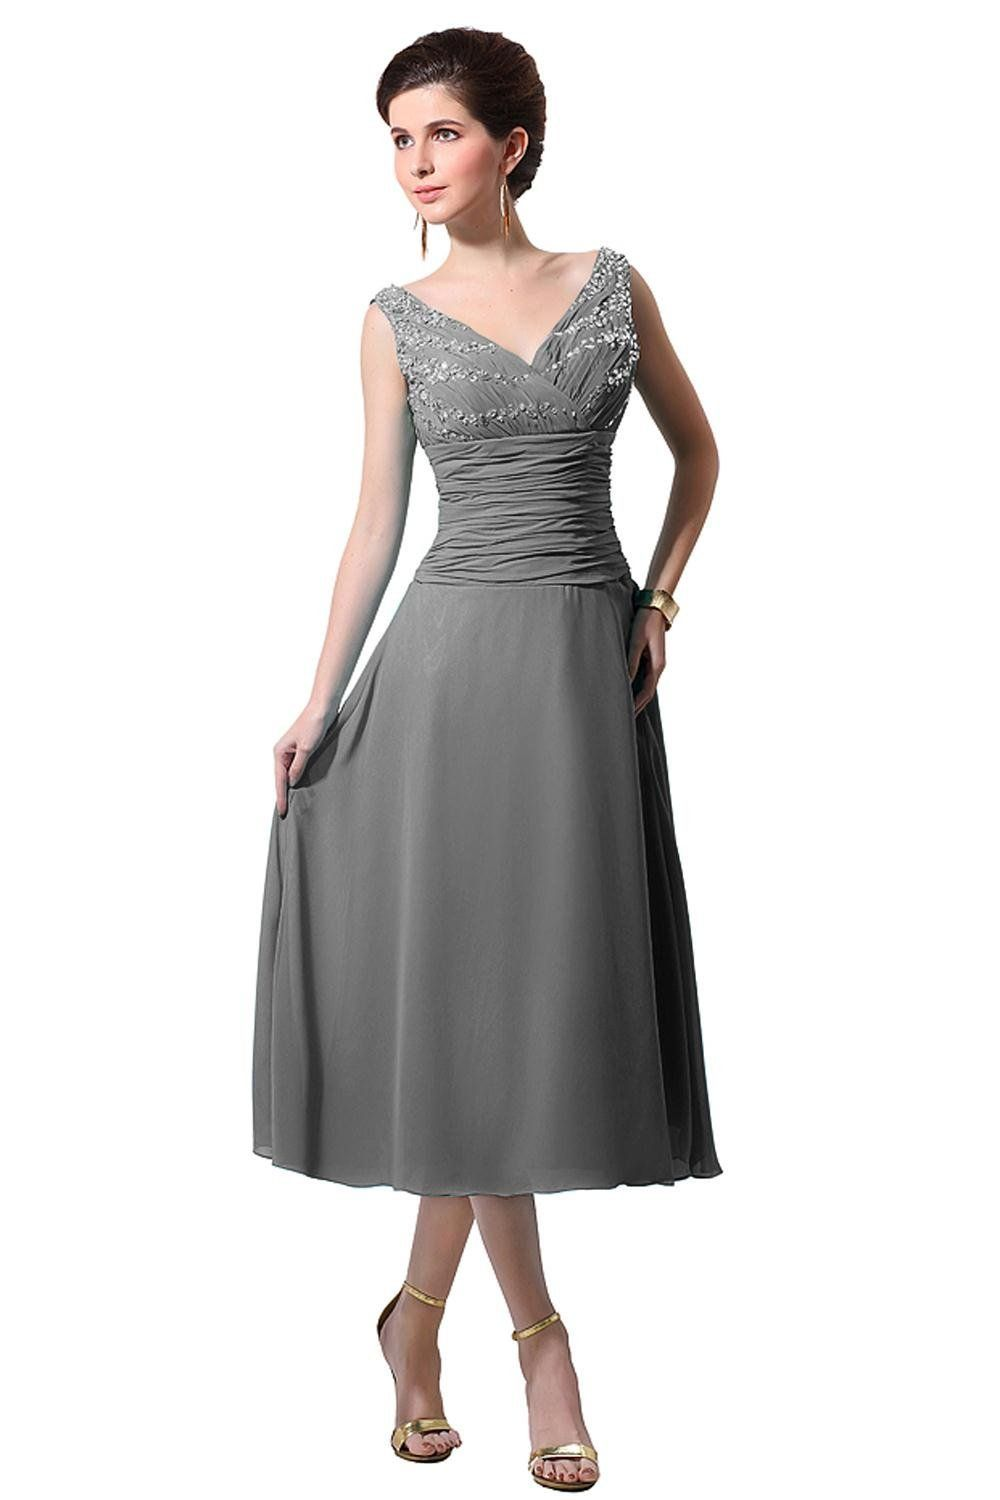 5f5d58ca507 Bess Bridal Women´s V Neck Chiffon Tea Length Mother of the Bride Dress   Amazon Fashion